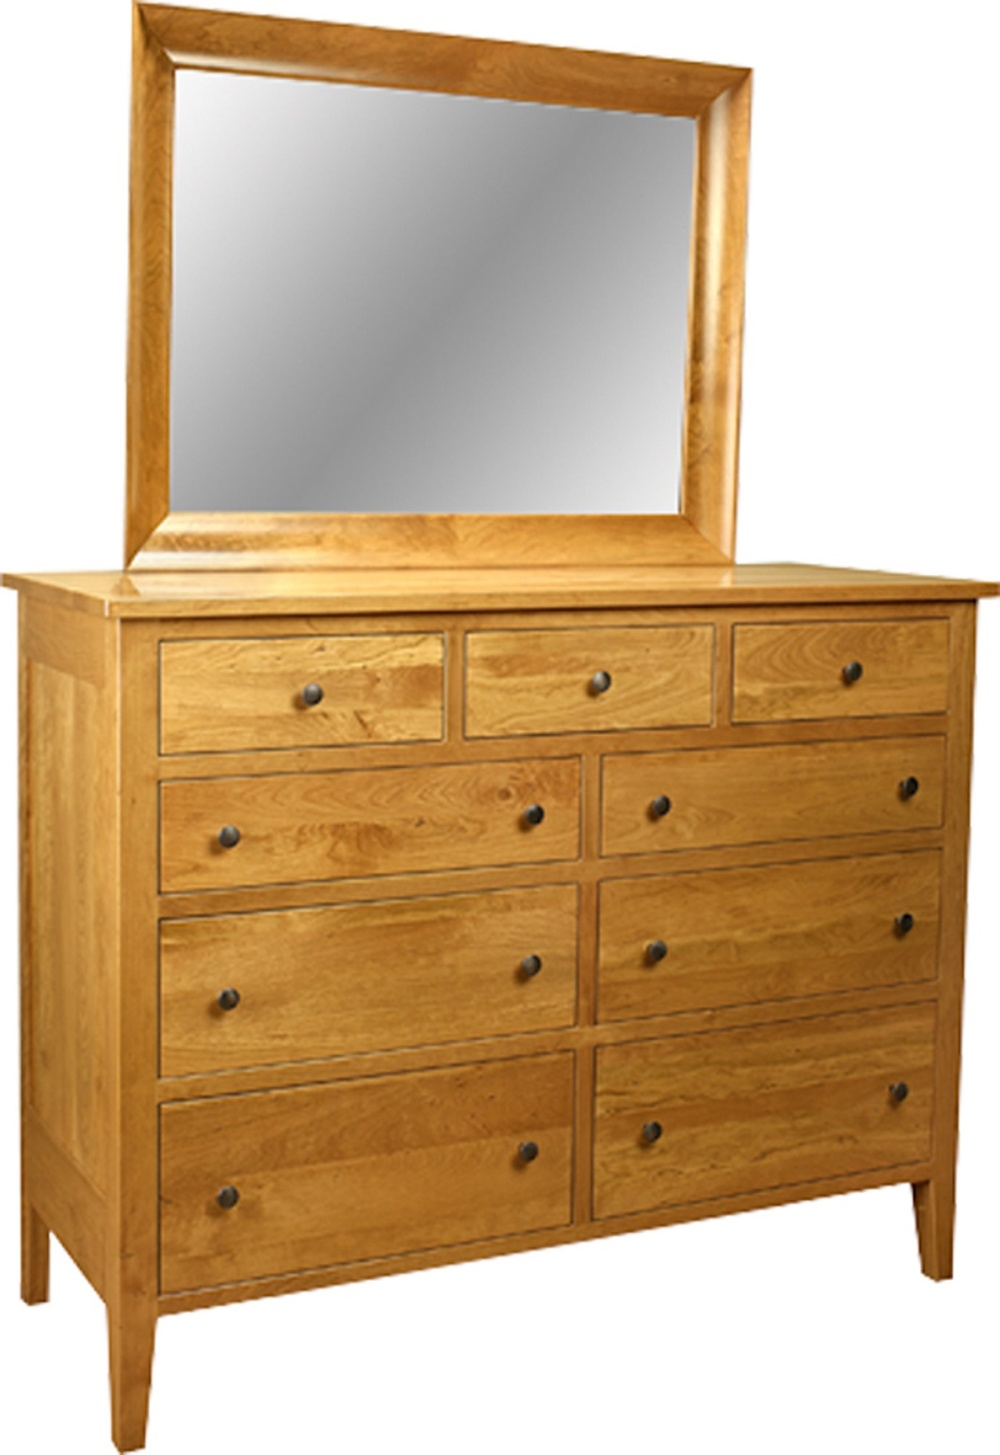 CS-1657 Tall Dresser with MI-563 Mirror.jpg